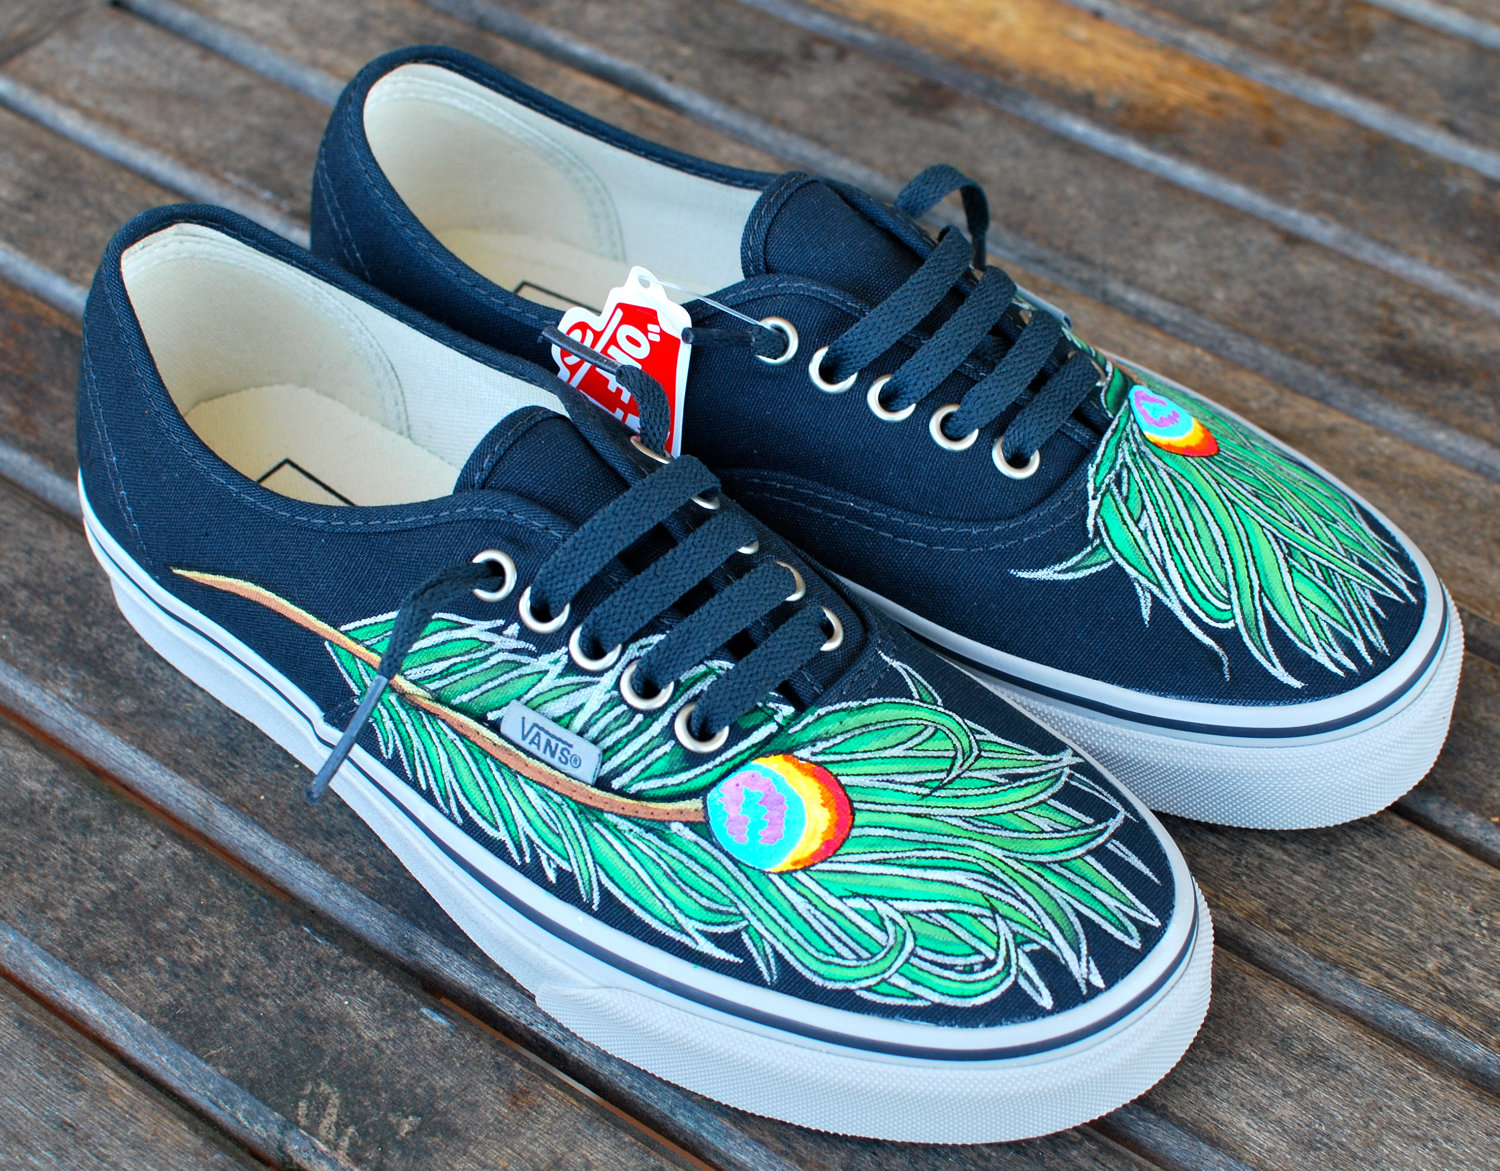 Drawn vans feather On by Wavy 00 Peacock